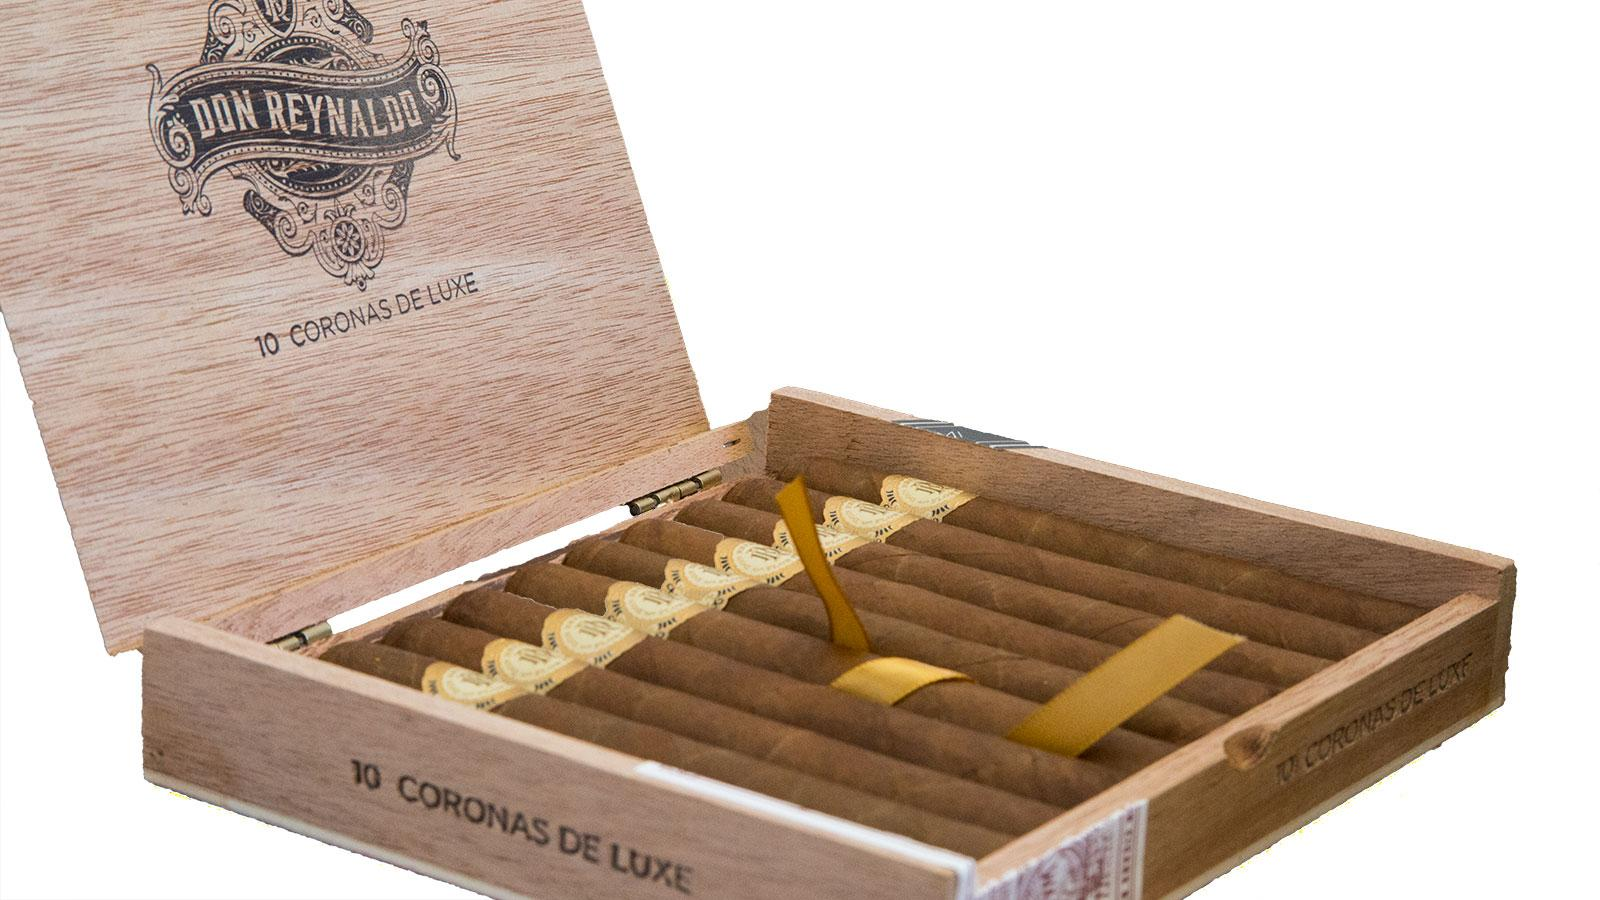 Warped Shipping Limited Don Reynaldo Coronas De Luxe